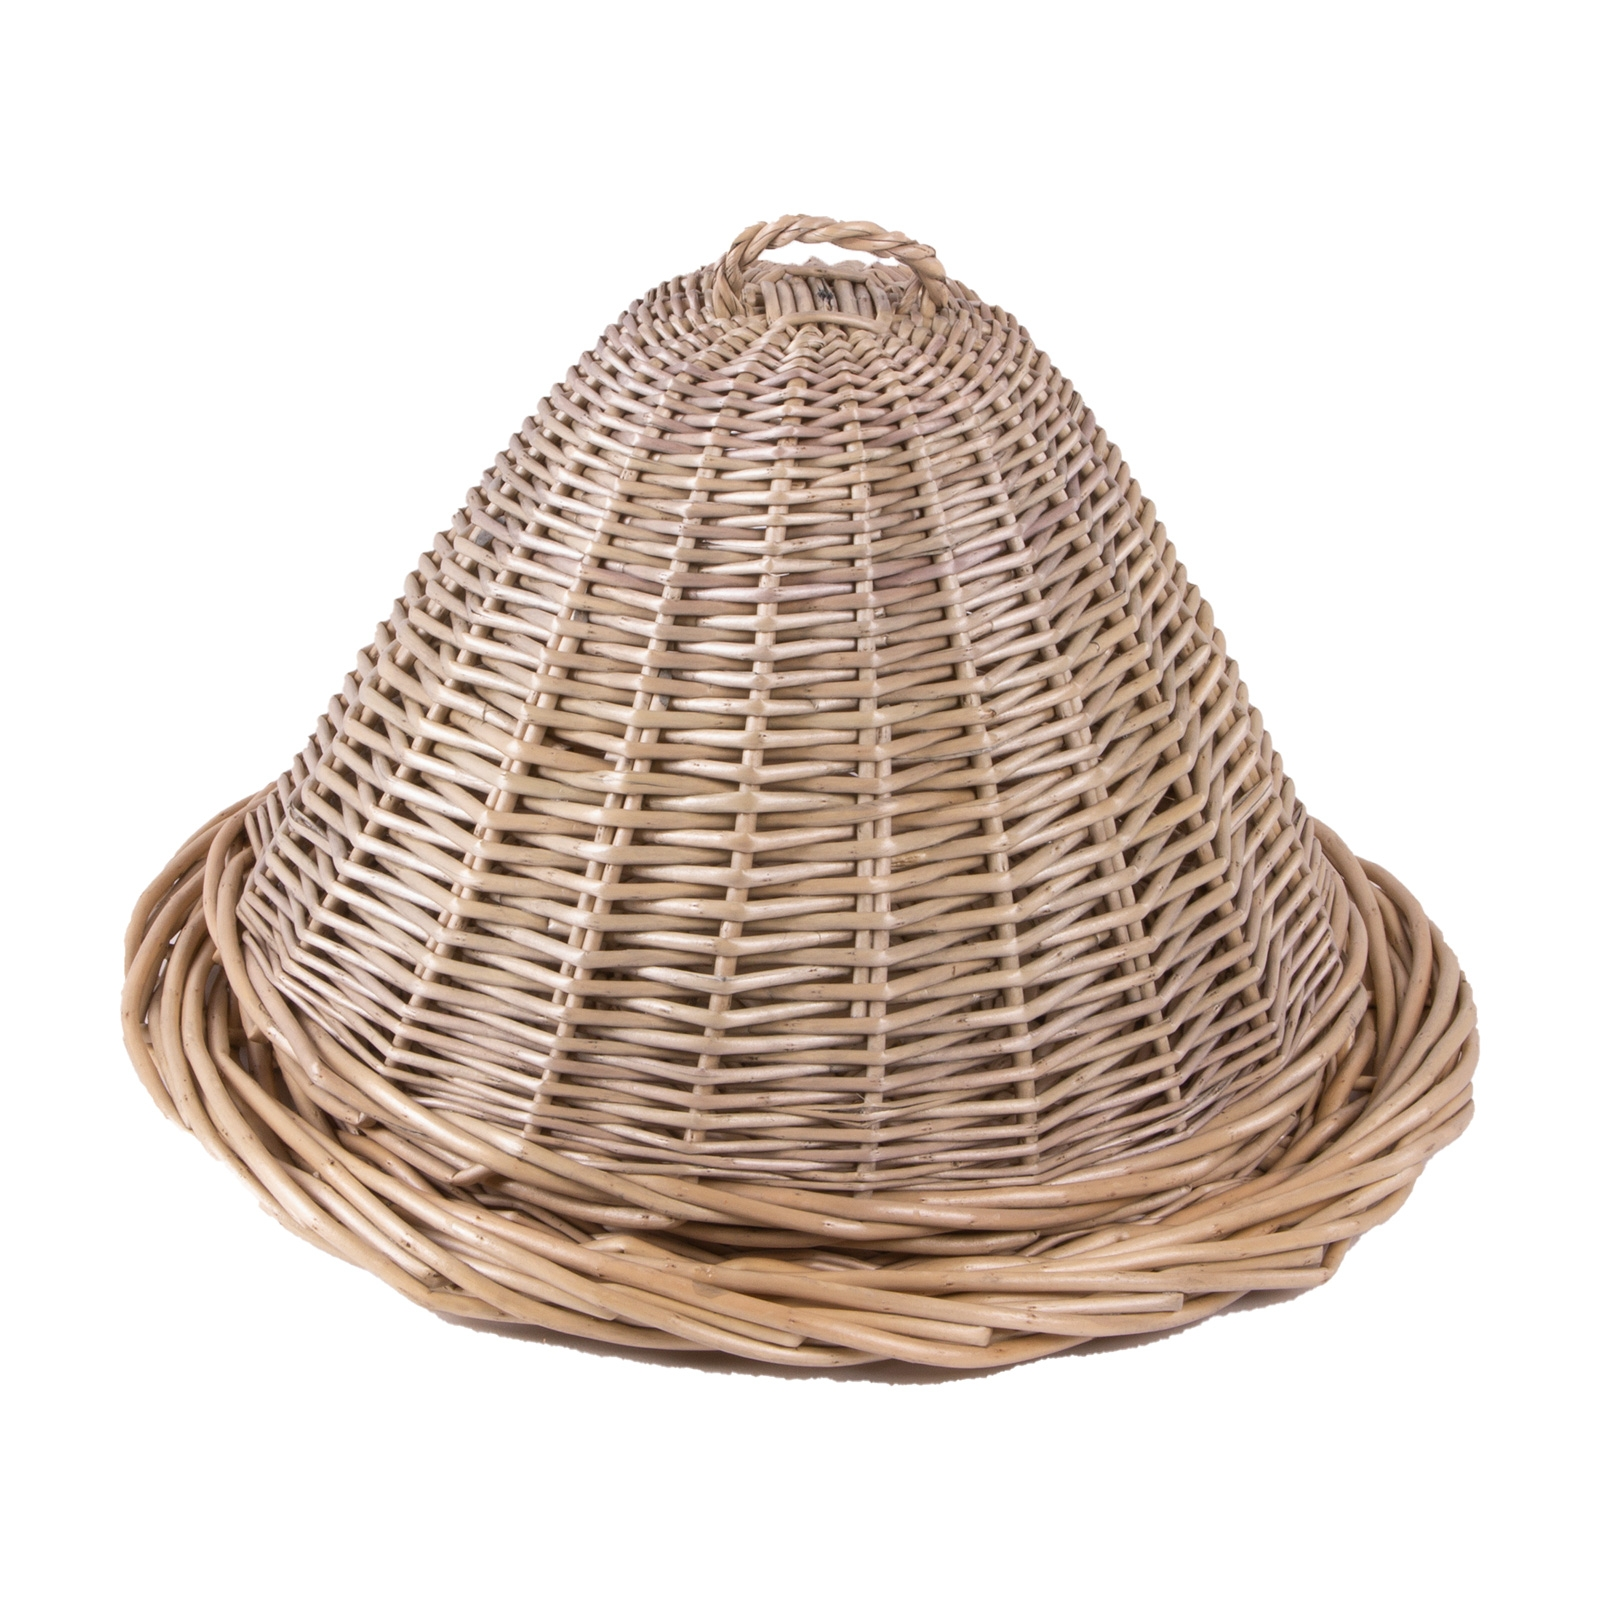 Willow Food Dome And Platter